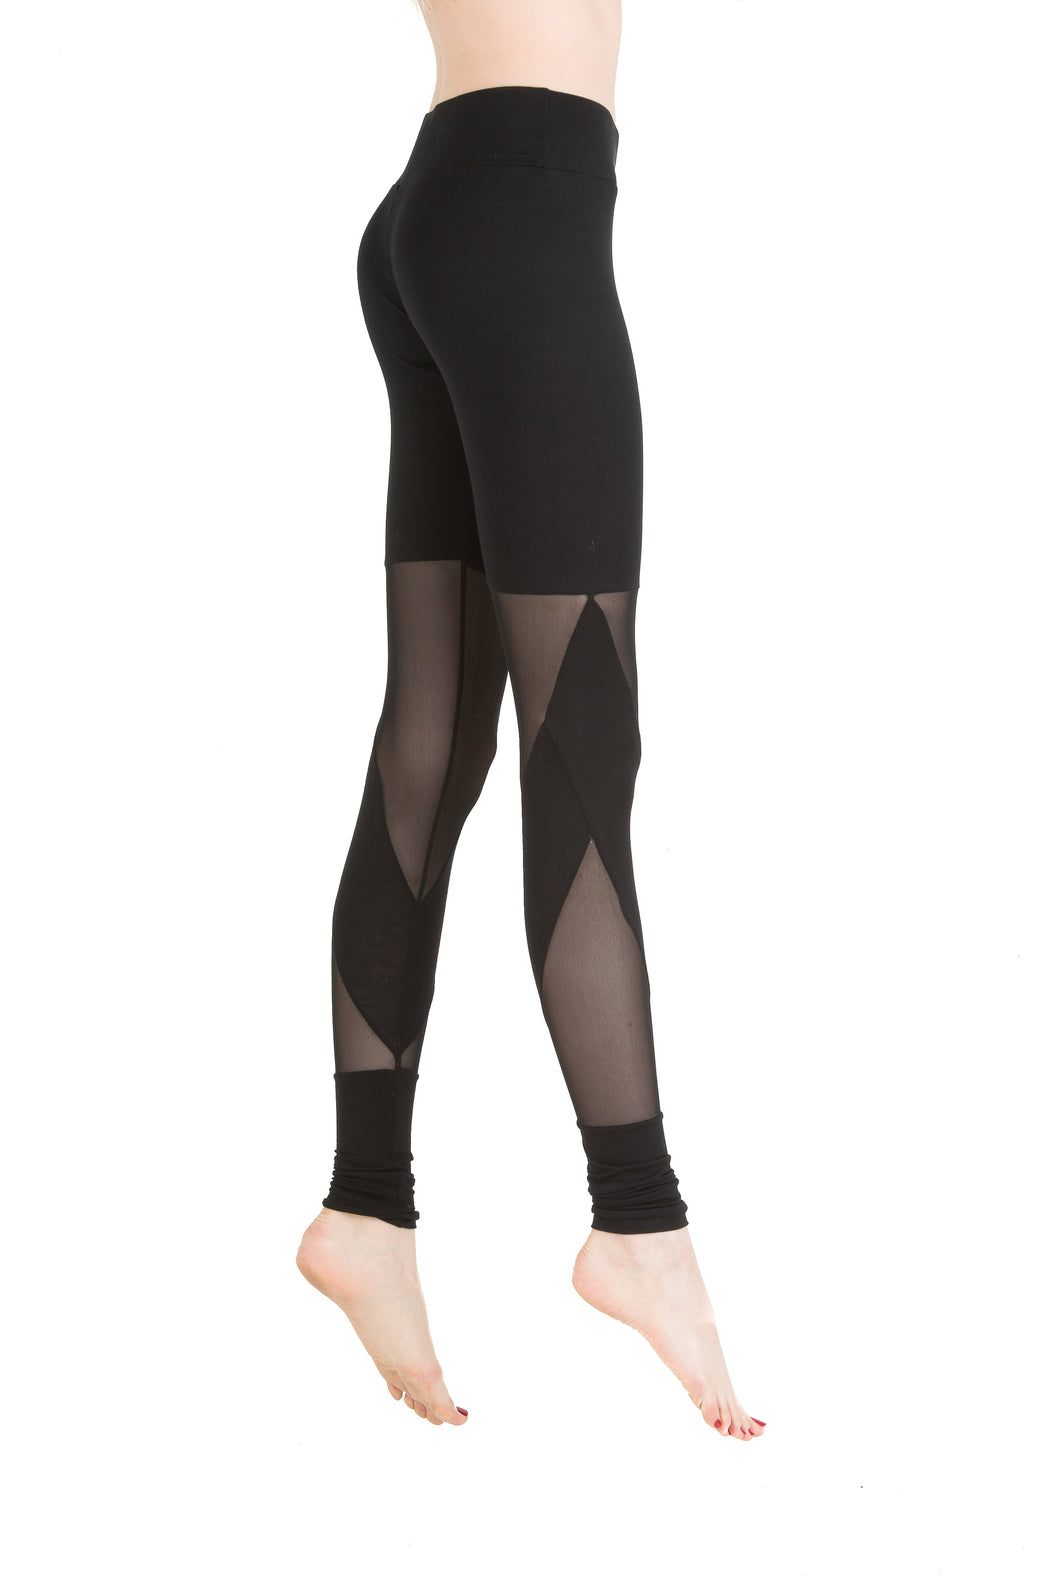 Arrow leggings - The Funding Ninjas